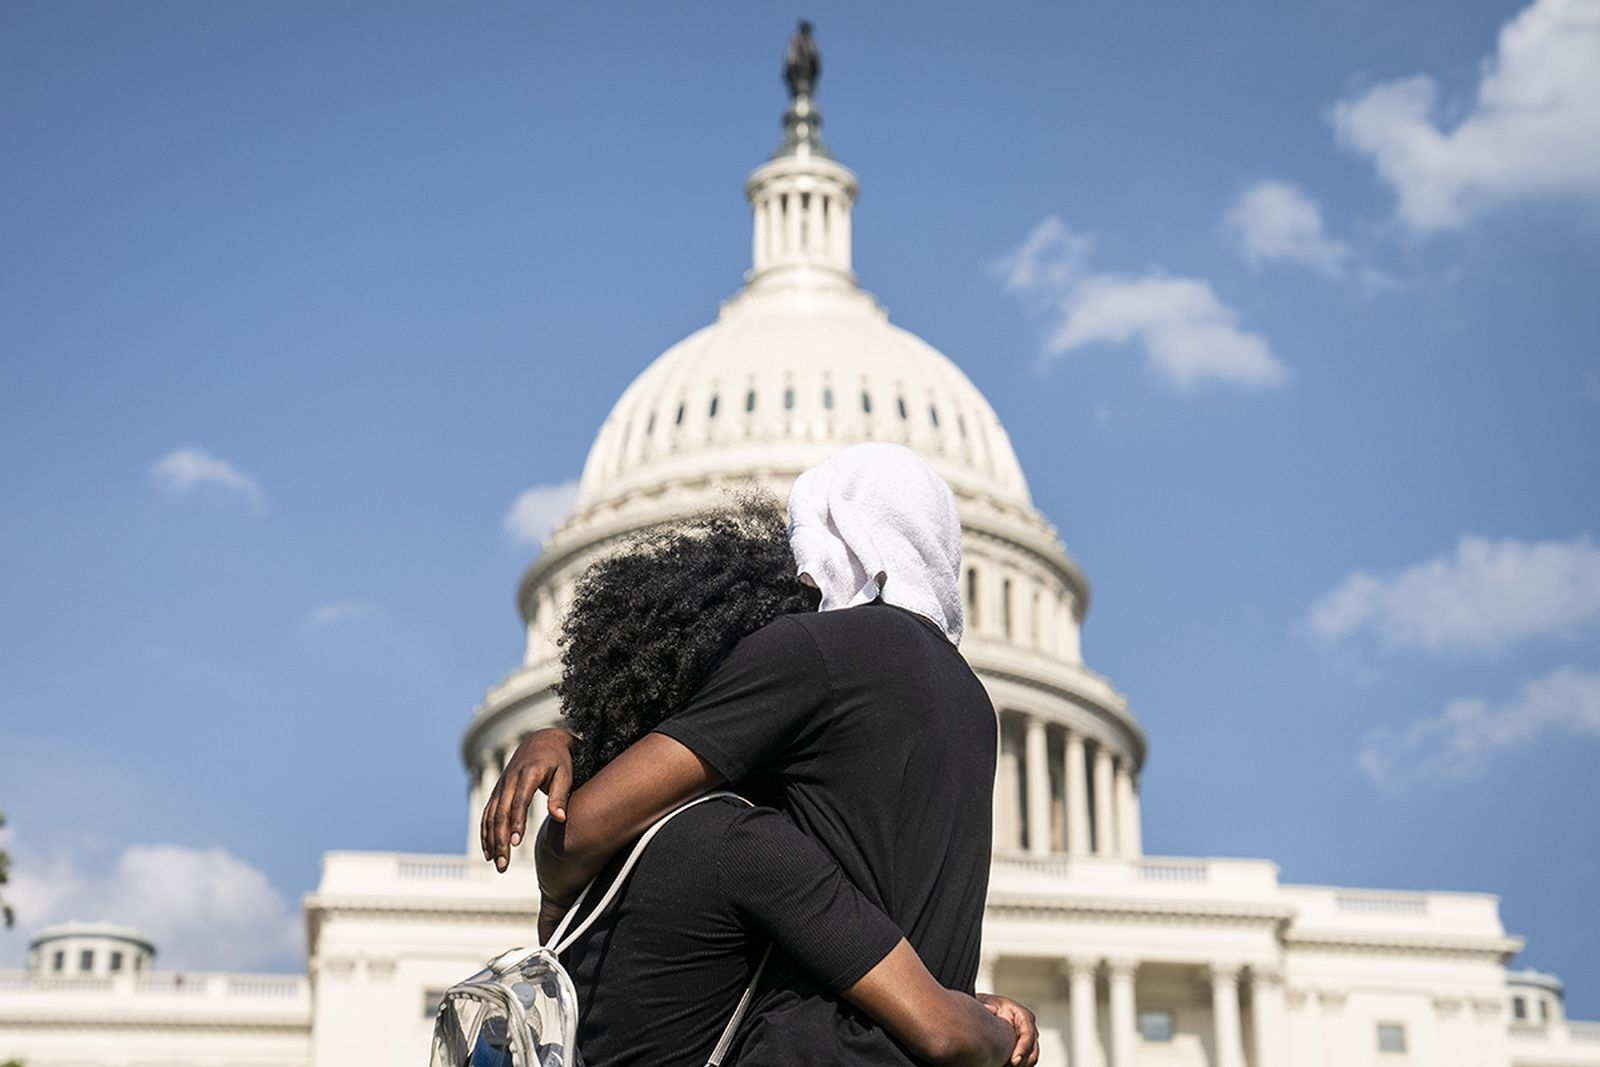 People gather at the U.S. Capitol during a peaceful protest against police brutality